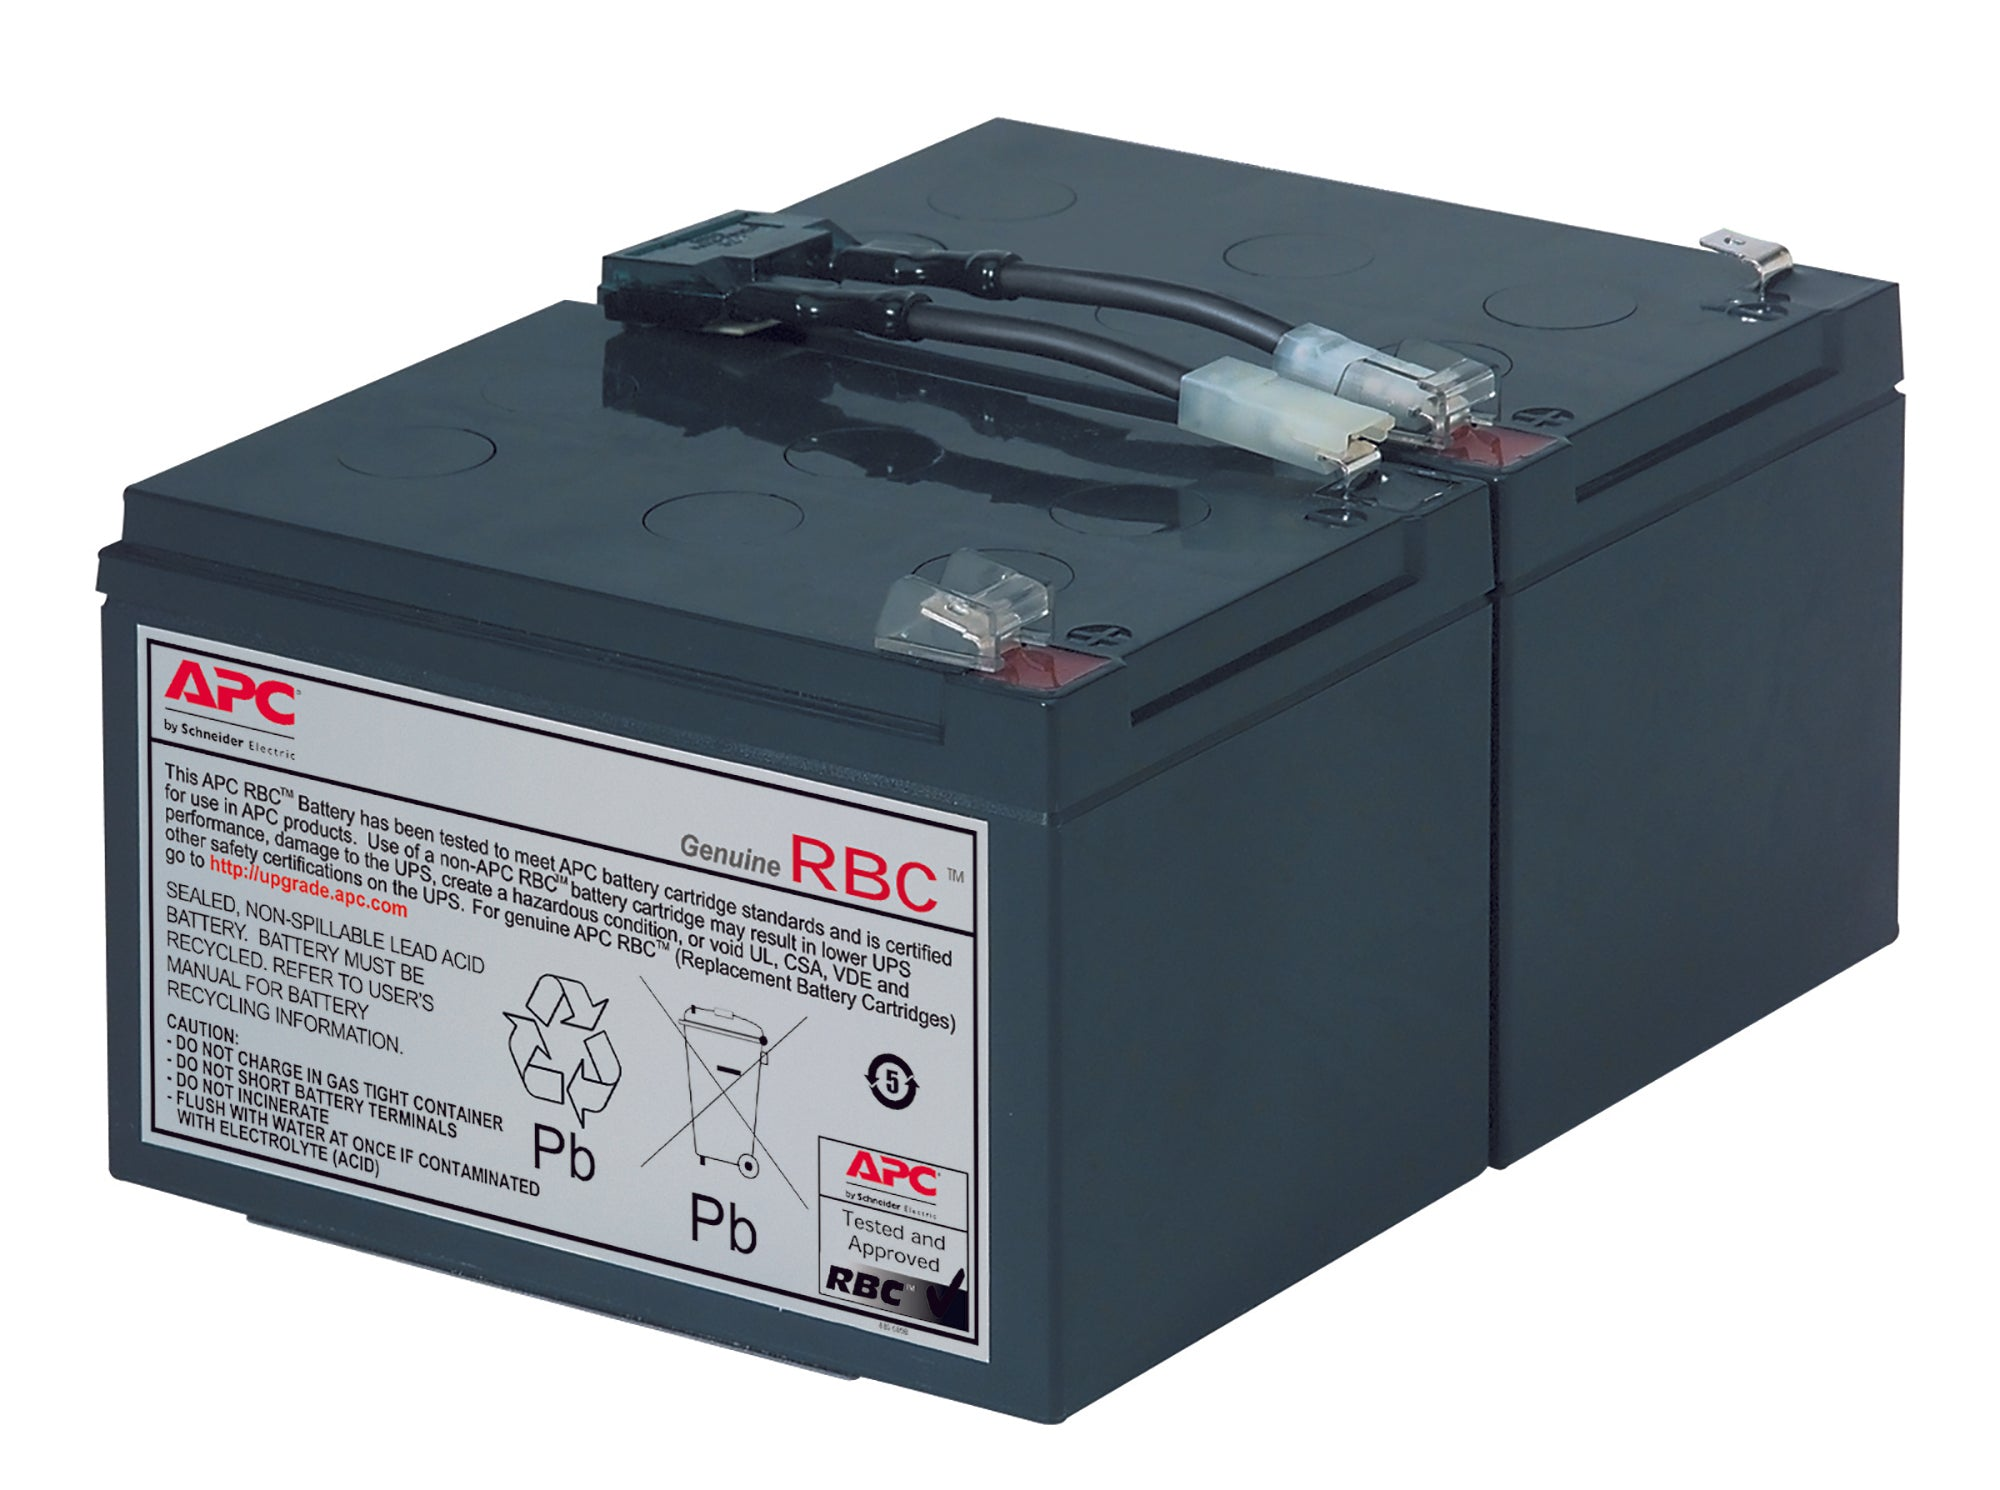 RBC6 APC Replacement Battery Cartridge #6